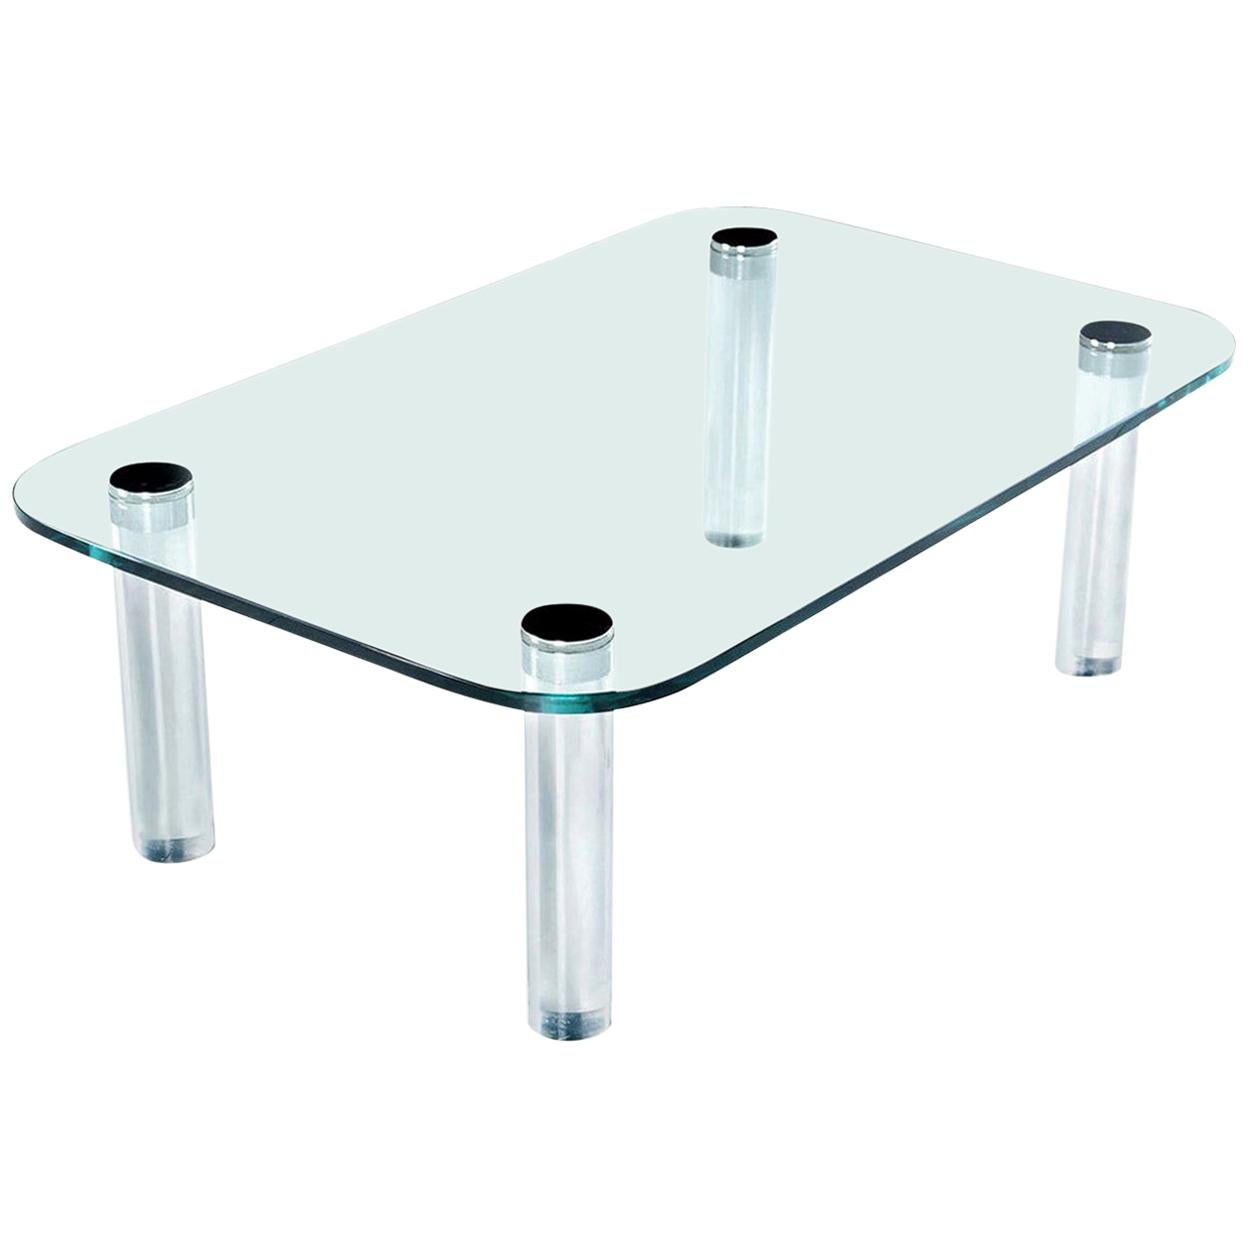 Pace Collection Lucite Chrome Screw Leg and Glass Coffee Table by Leon Rosen